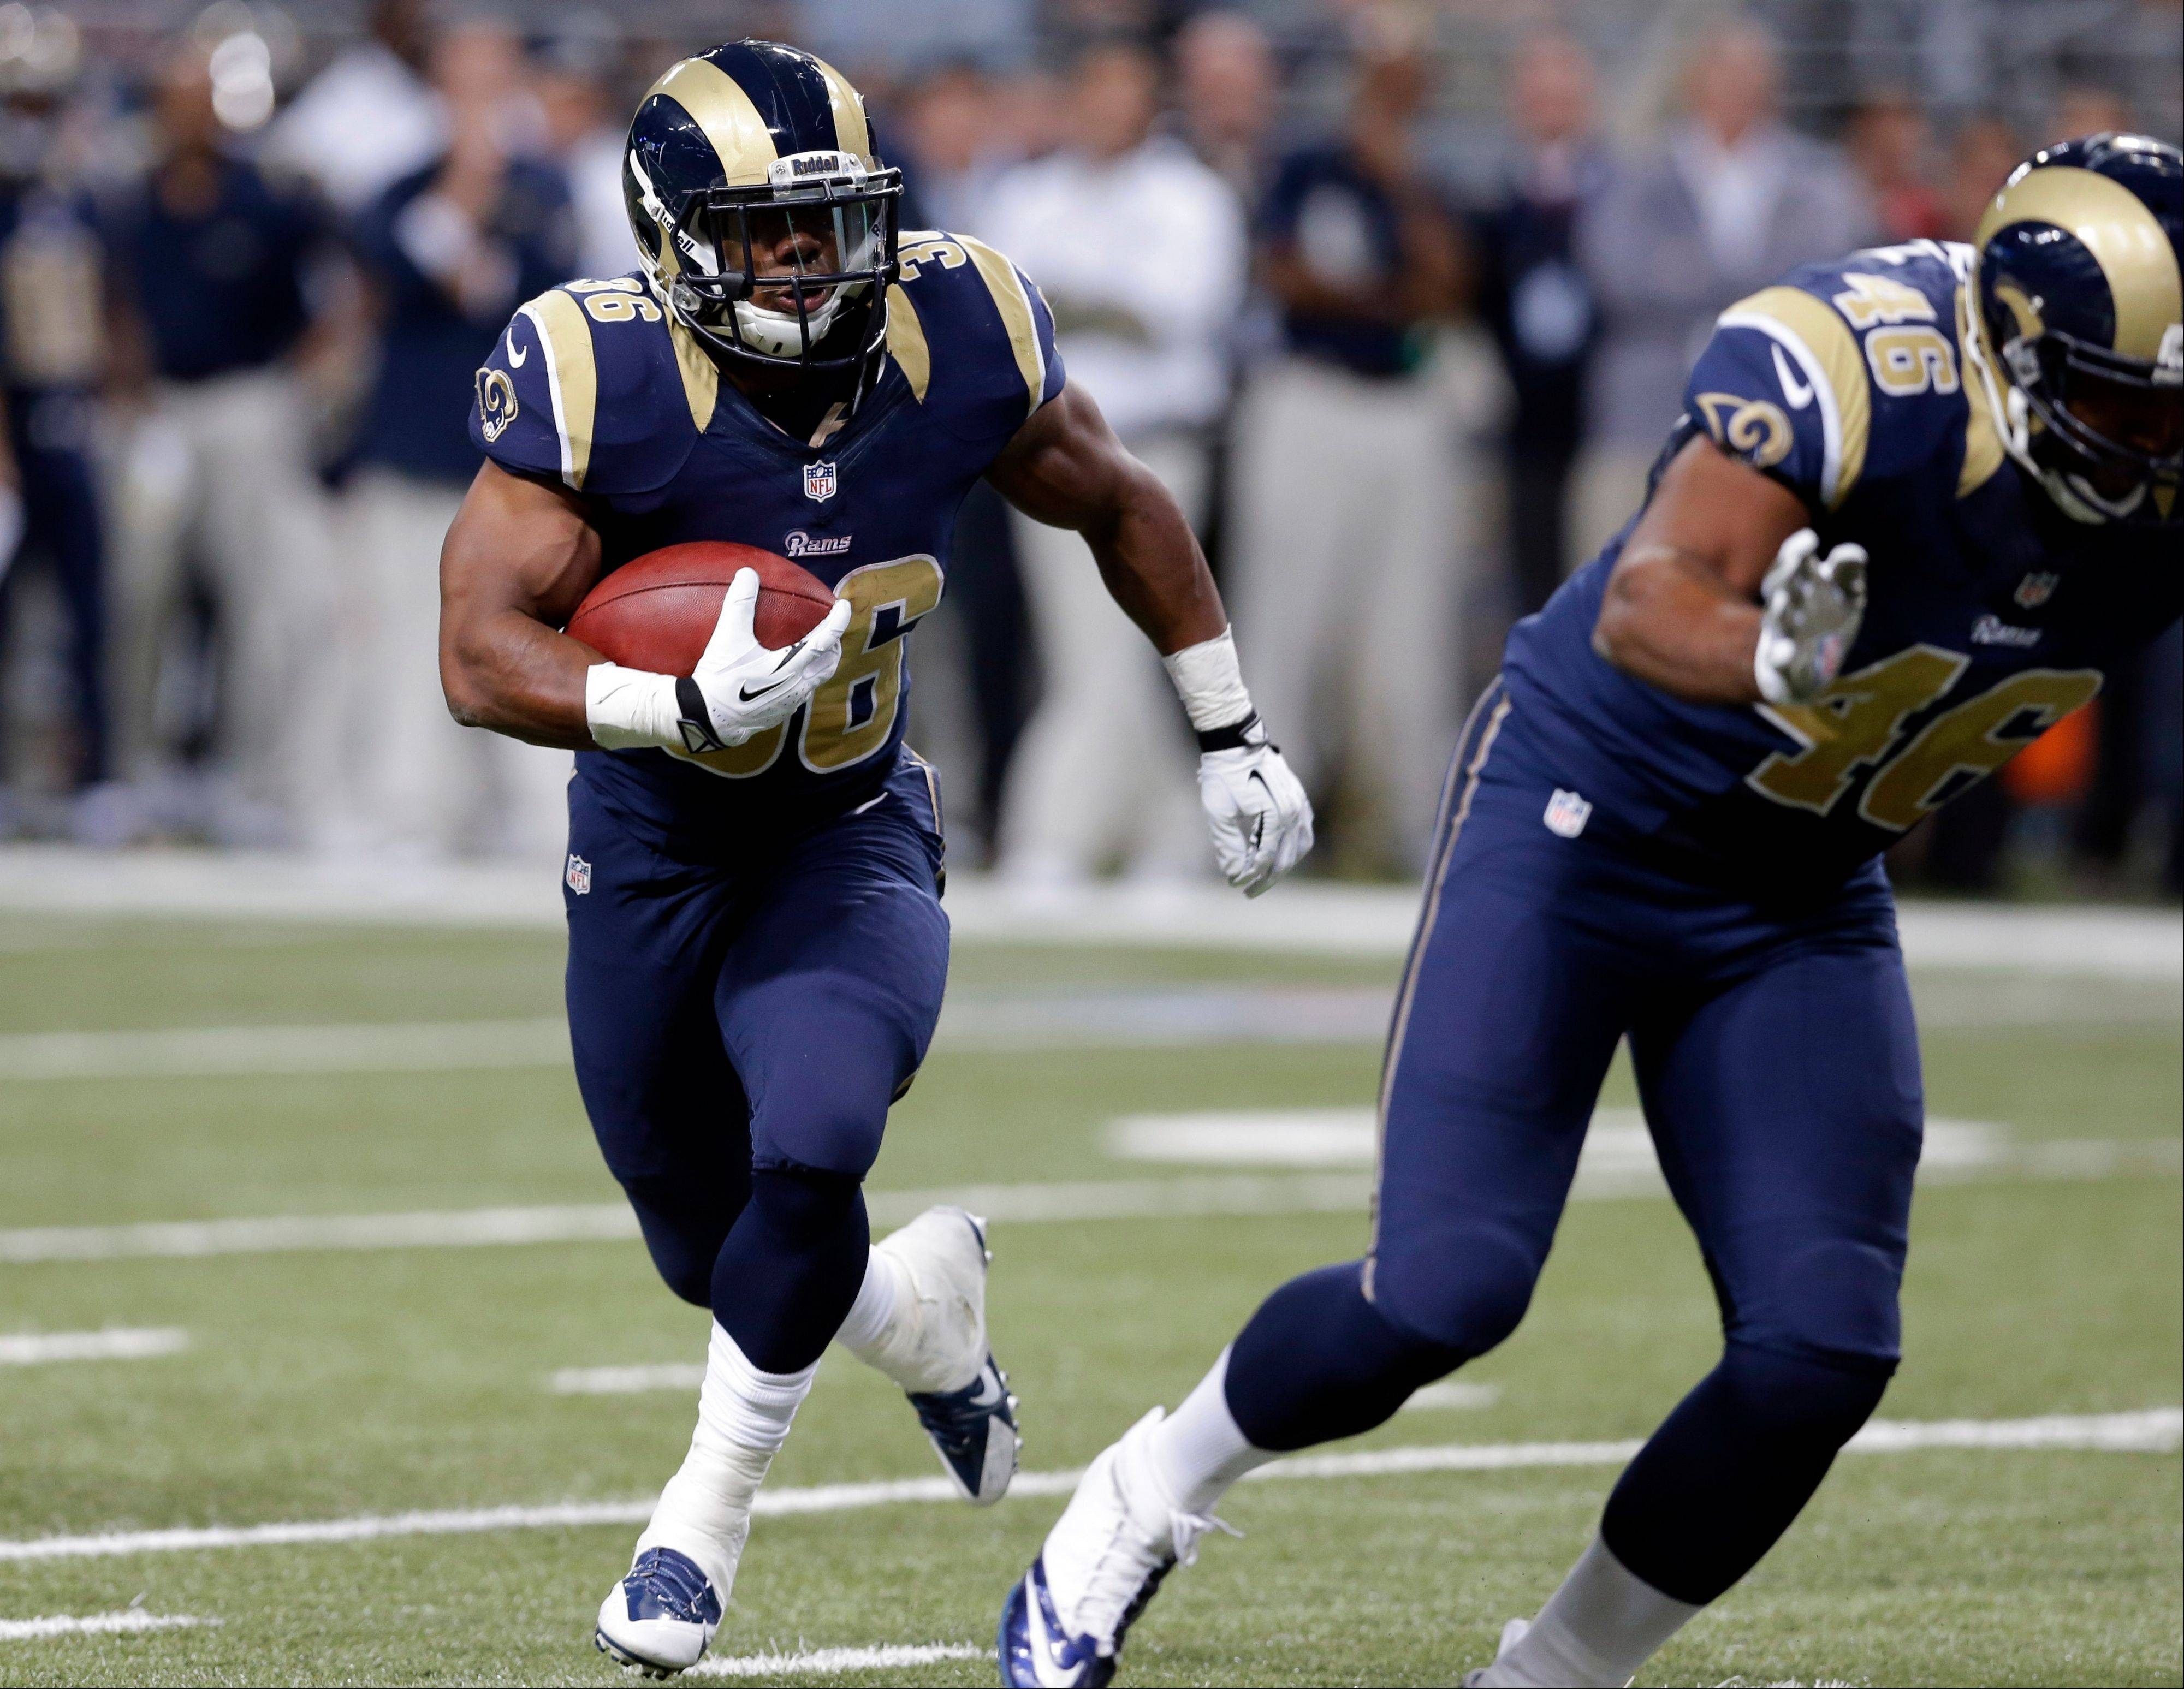 St. Louis Rams running back Benny Cunningham heads to the end zone for a 9-yard touchdown run in the fourth quarter Sunday against a Bears defense that allowed 258 yards rushing.